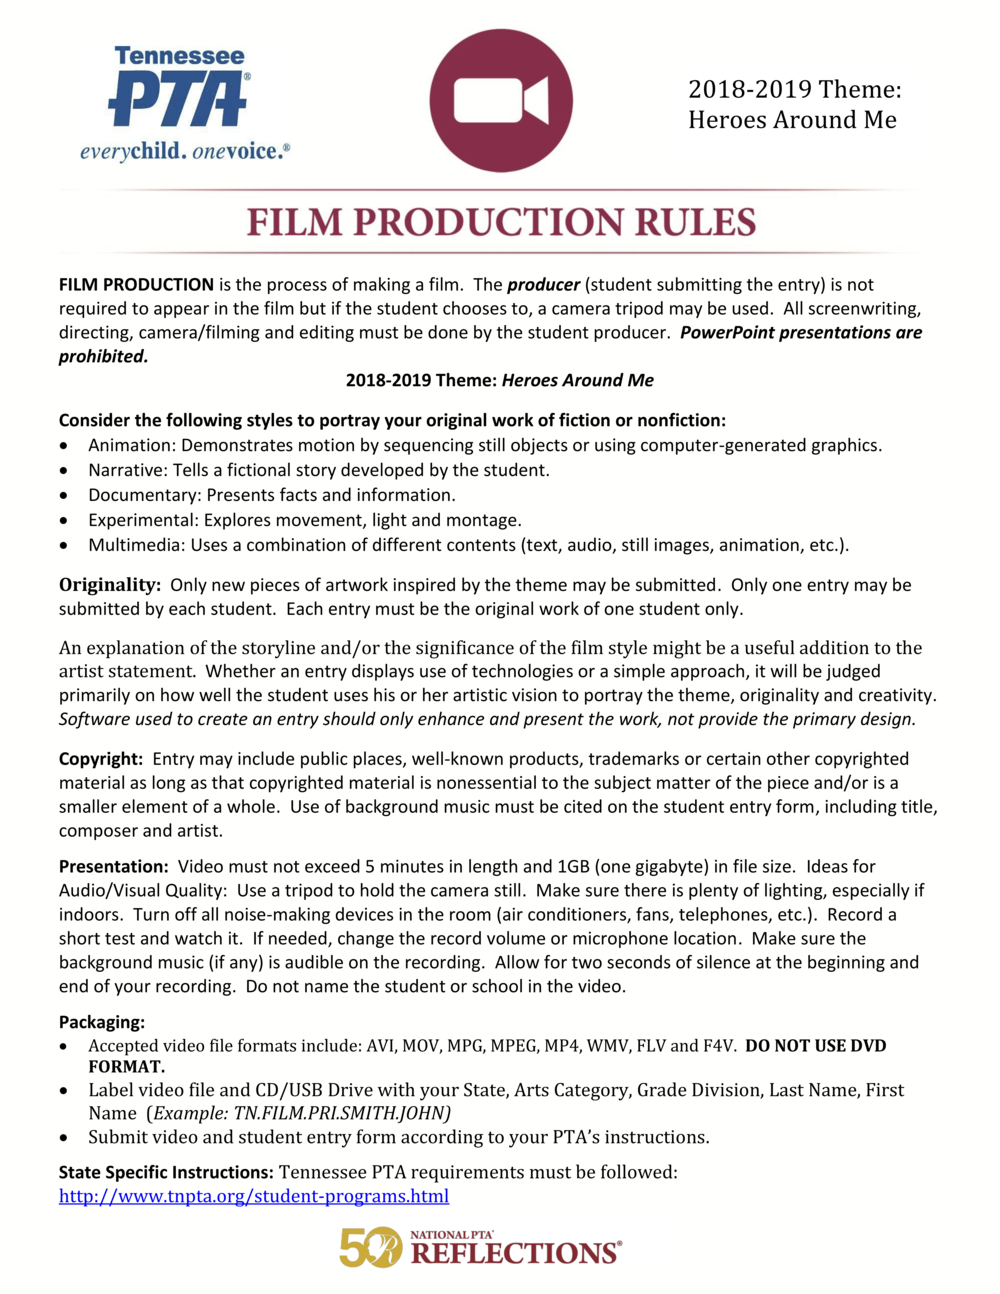 18-19 Reflections Film Production Rules.png